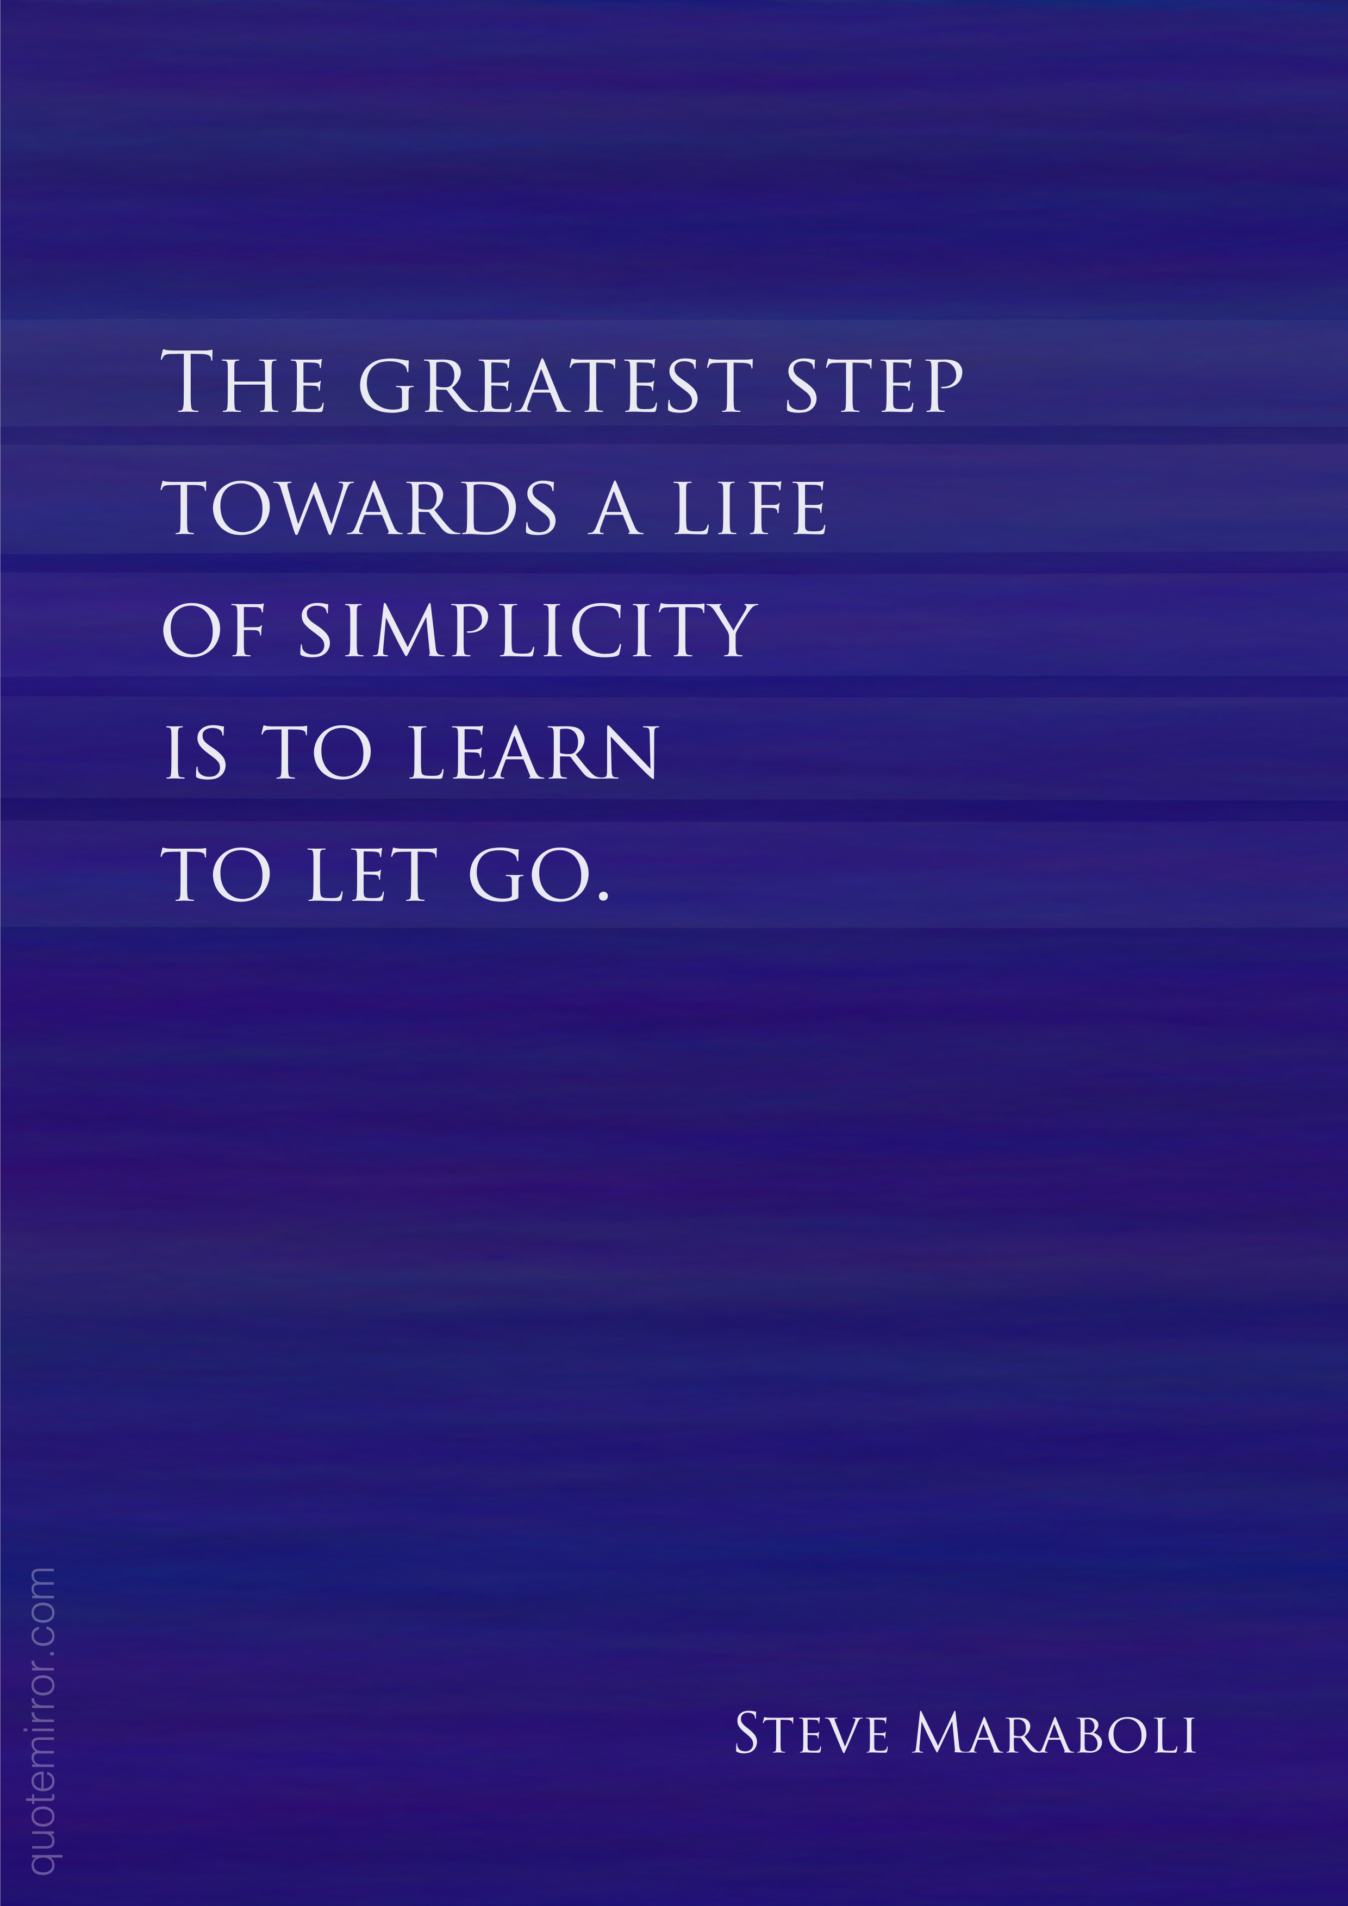 The Greatest Step Towards A Life Of Simplicity Is To Learn To Let Go Steve Maraboli Life Simplicity Learning To Let Go Letting Go Greatful